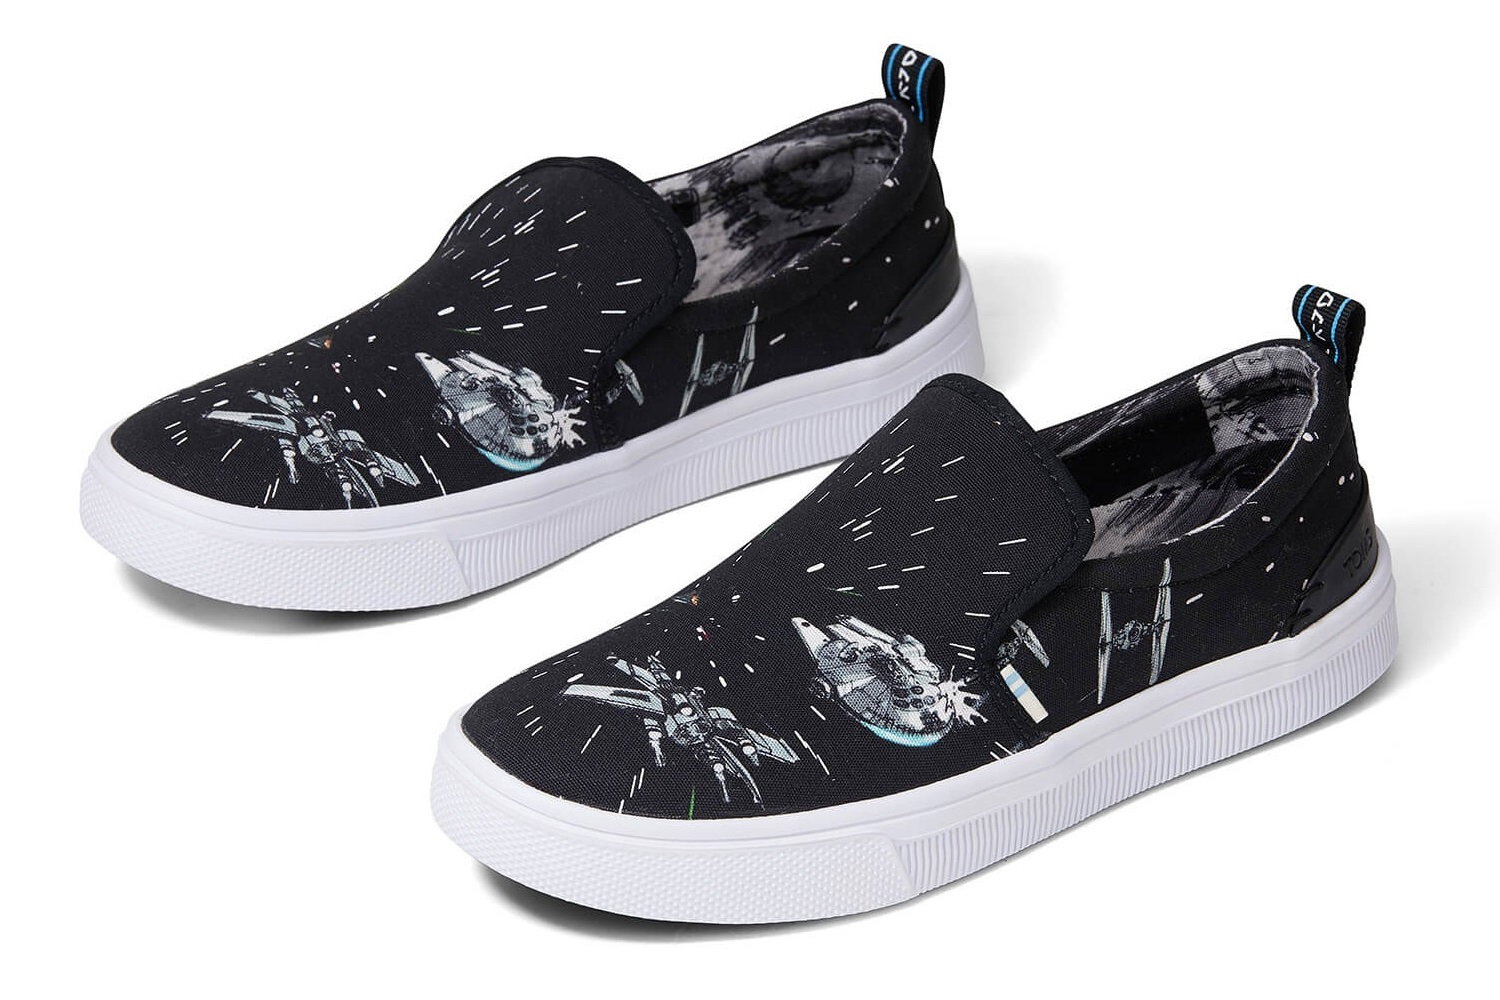 Toms x Star Wars Collection Launch!